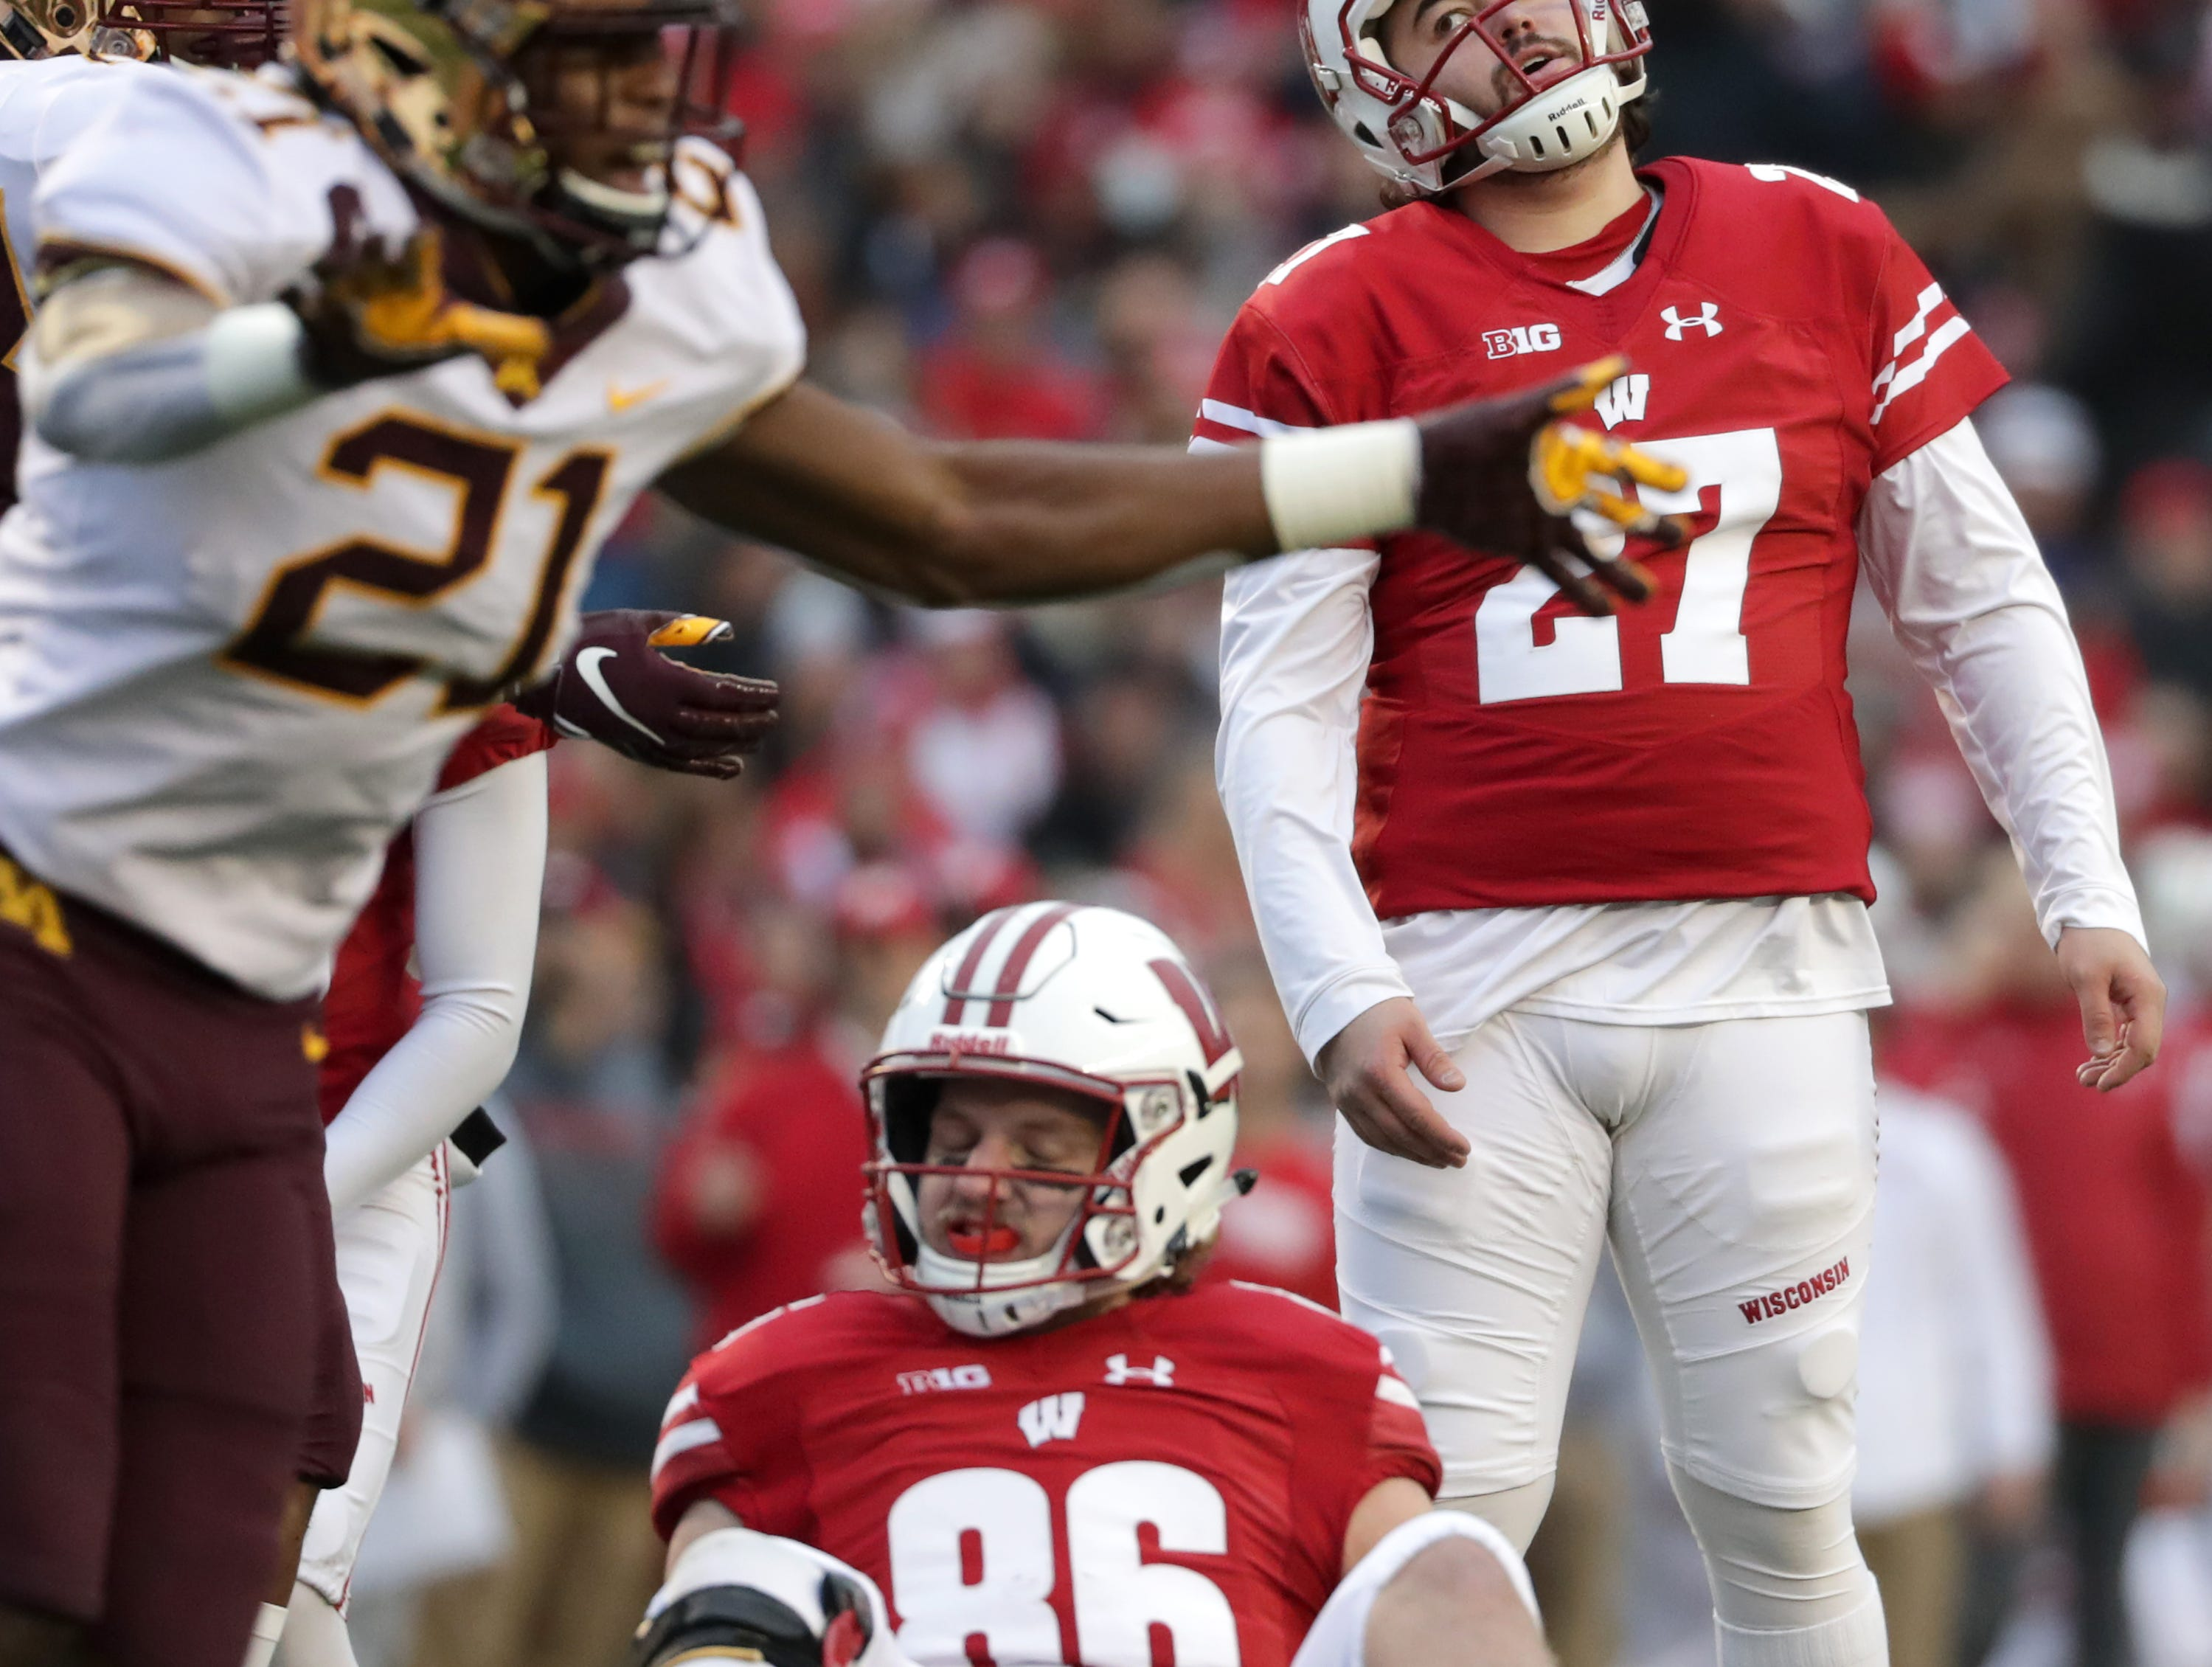 Wisconsin place kicker Rafael Gaglianone reacts after missing a first quarter field goal against the Minnesota Gopphers during their NCAA football game on Saturday, November 24, 2018, at Camp Randall in Madison, Wis.Wm. Glasheen/USA TODAY NETWORK-Wisconsin.